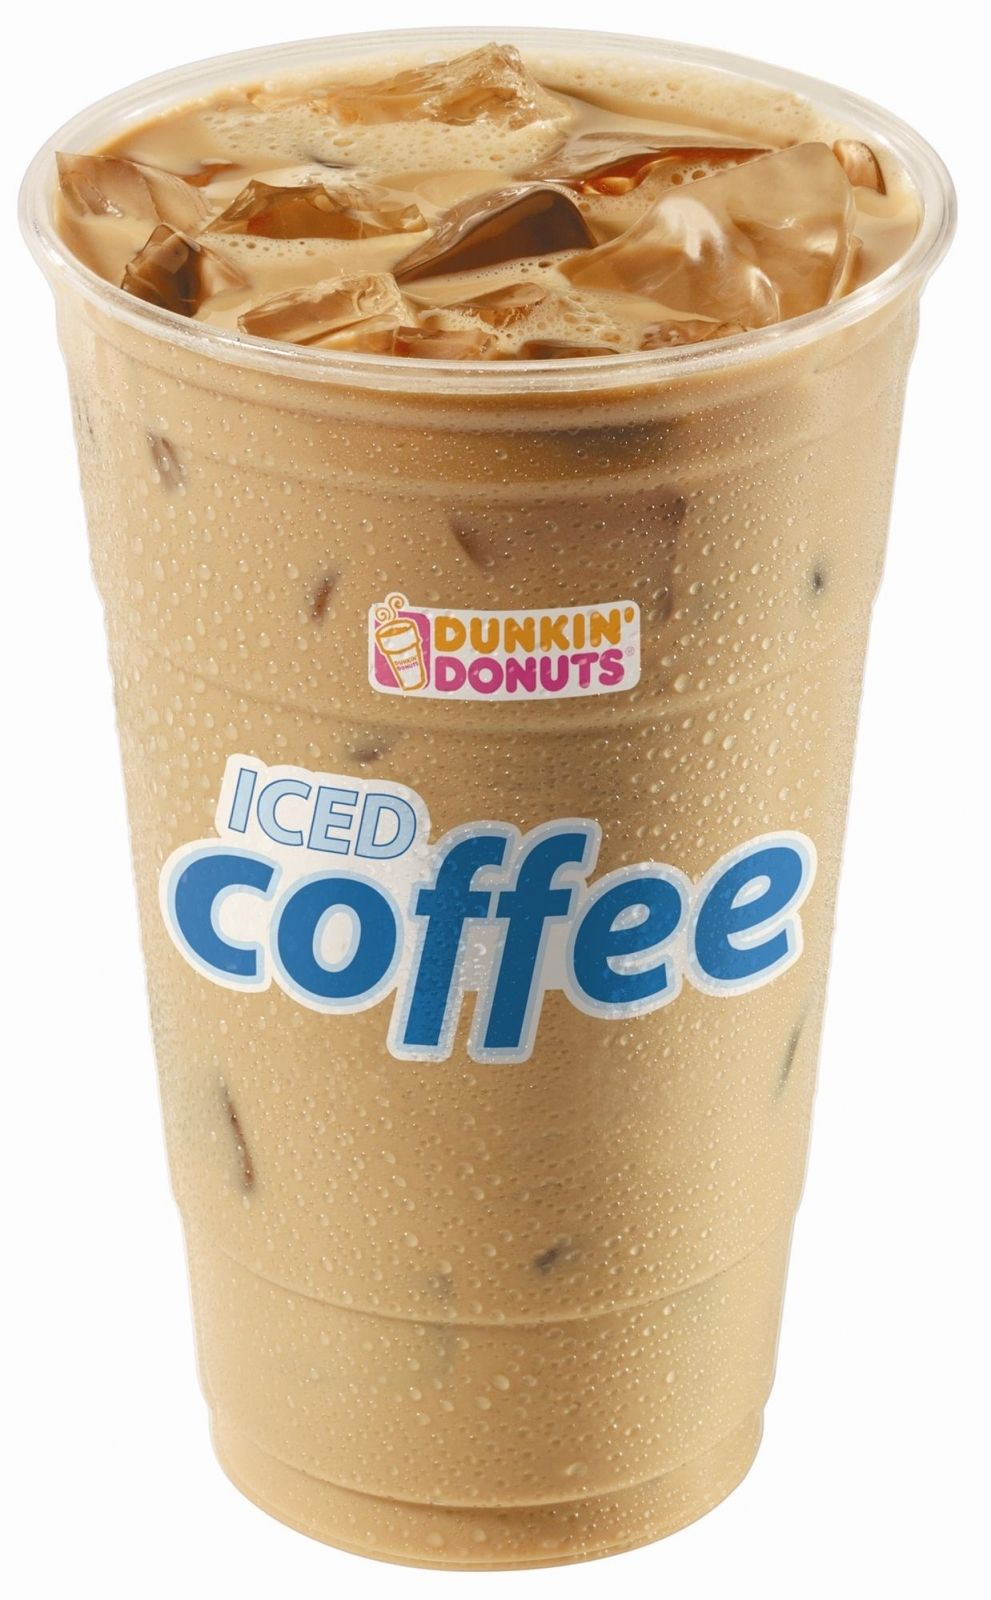 Free Iced Coffee at Dunkin Donuts